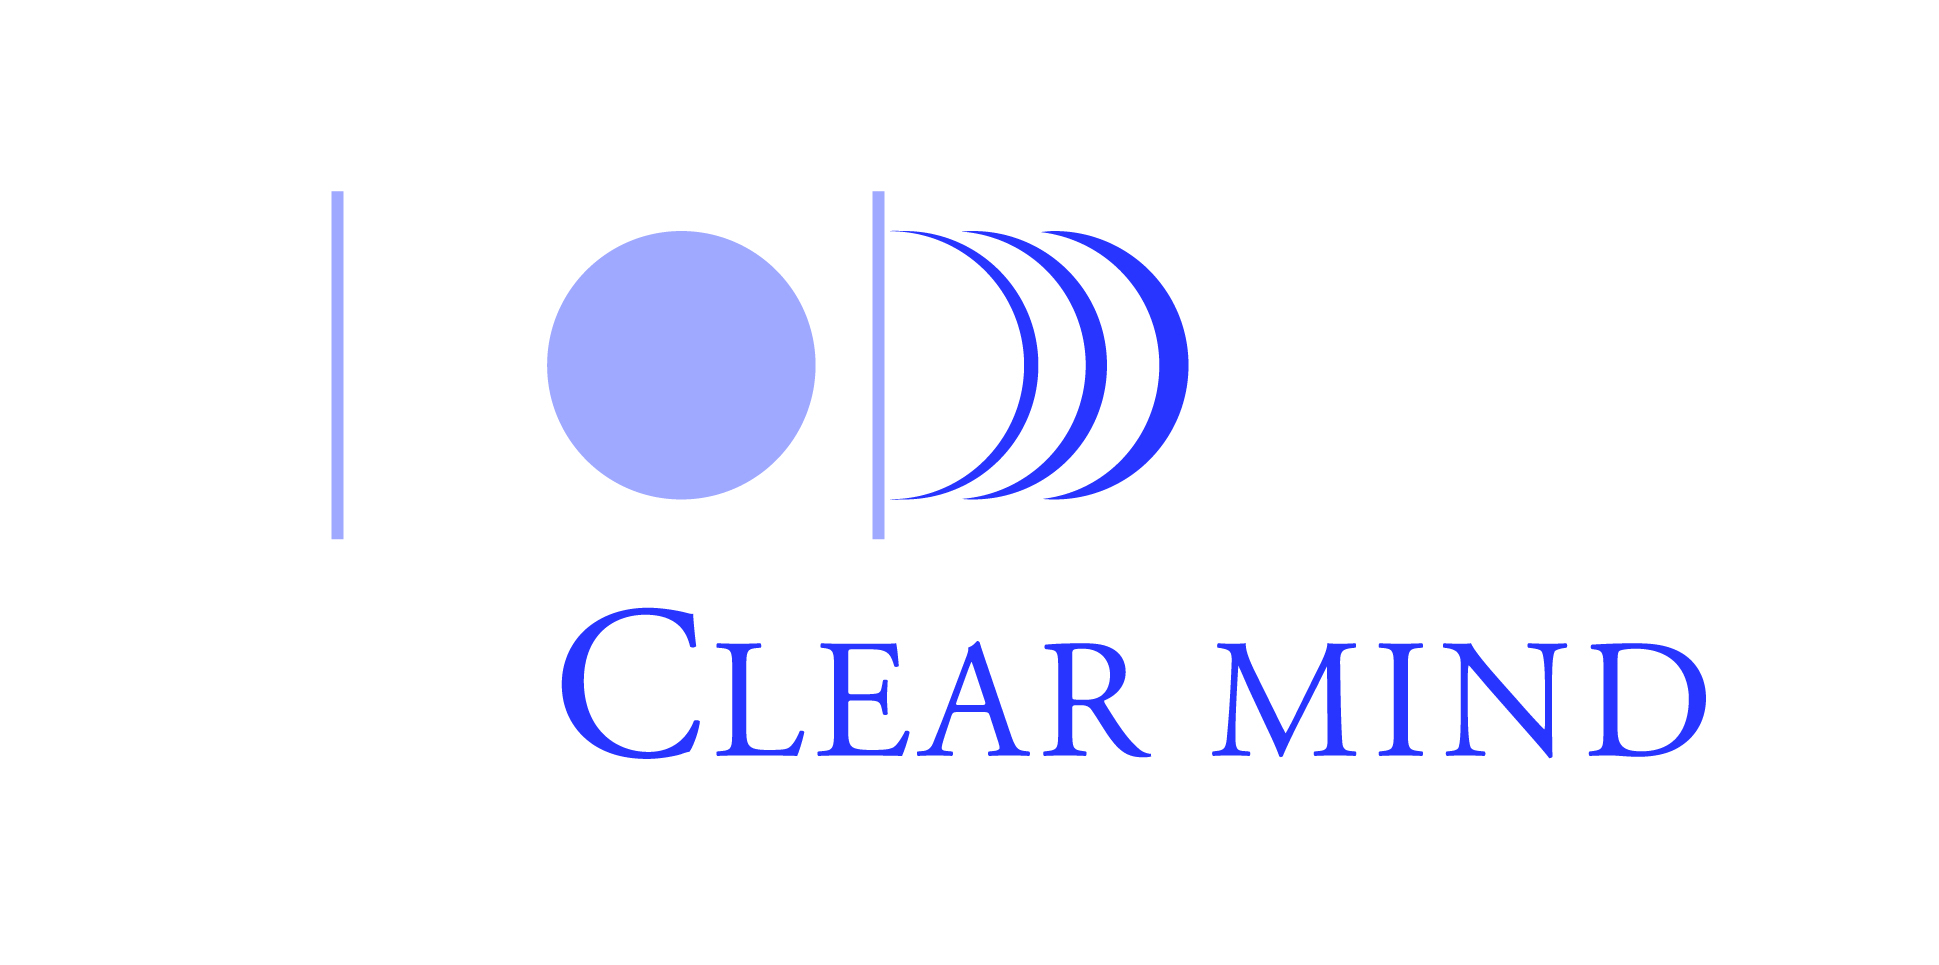 Clear Mind_logo.jpg